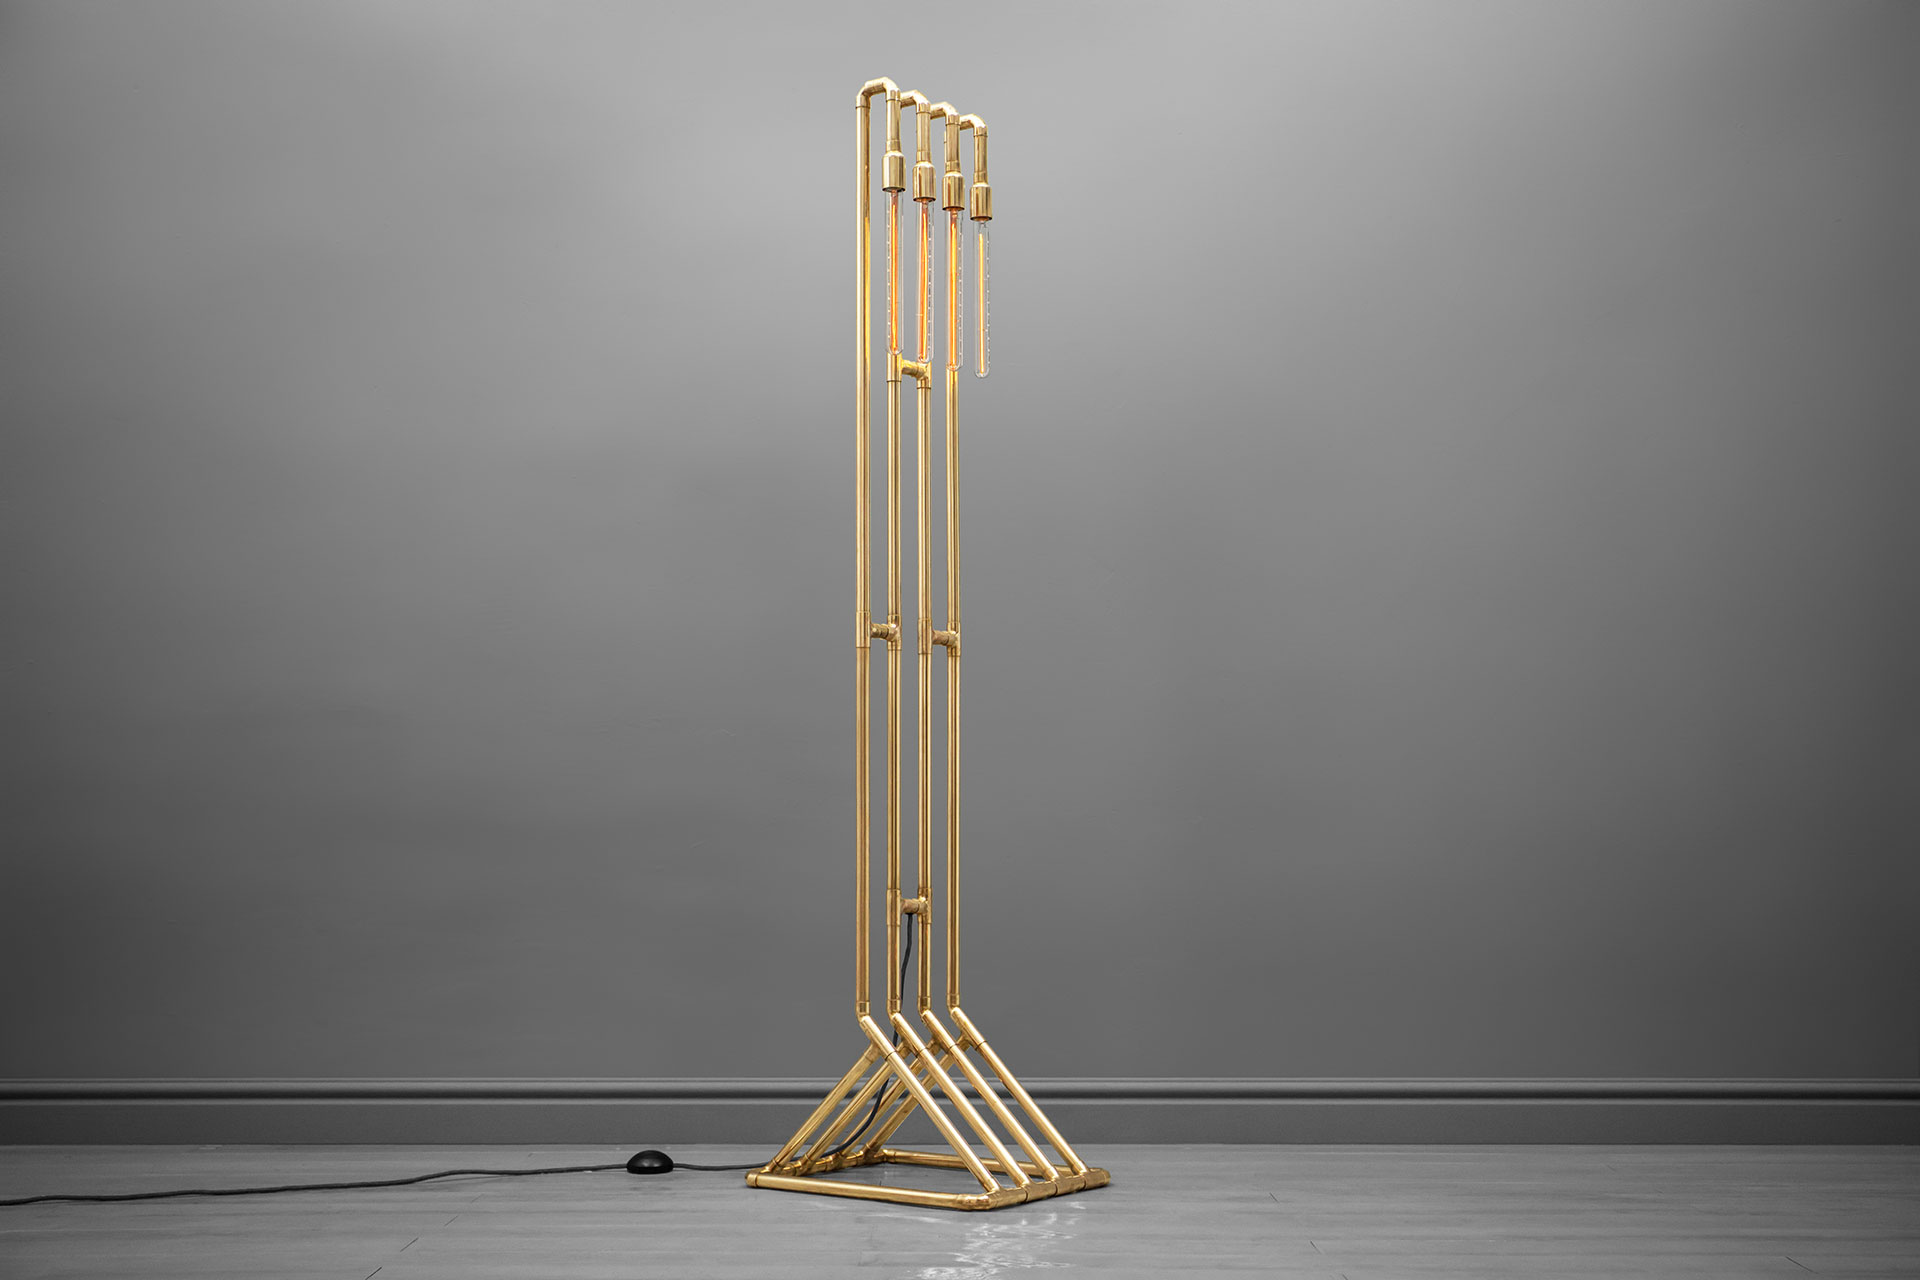 Industrial design floor lamp in trendy copper or gold brass inspired by installation art